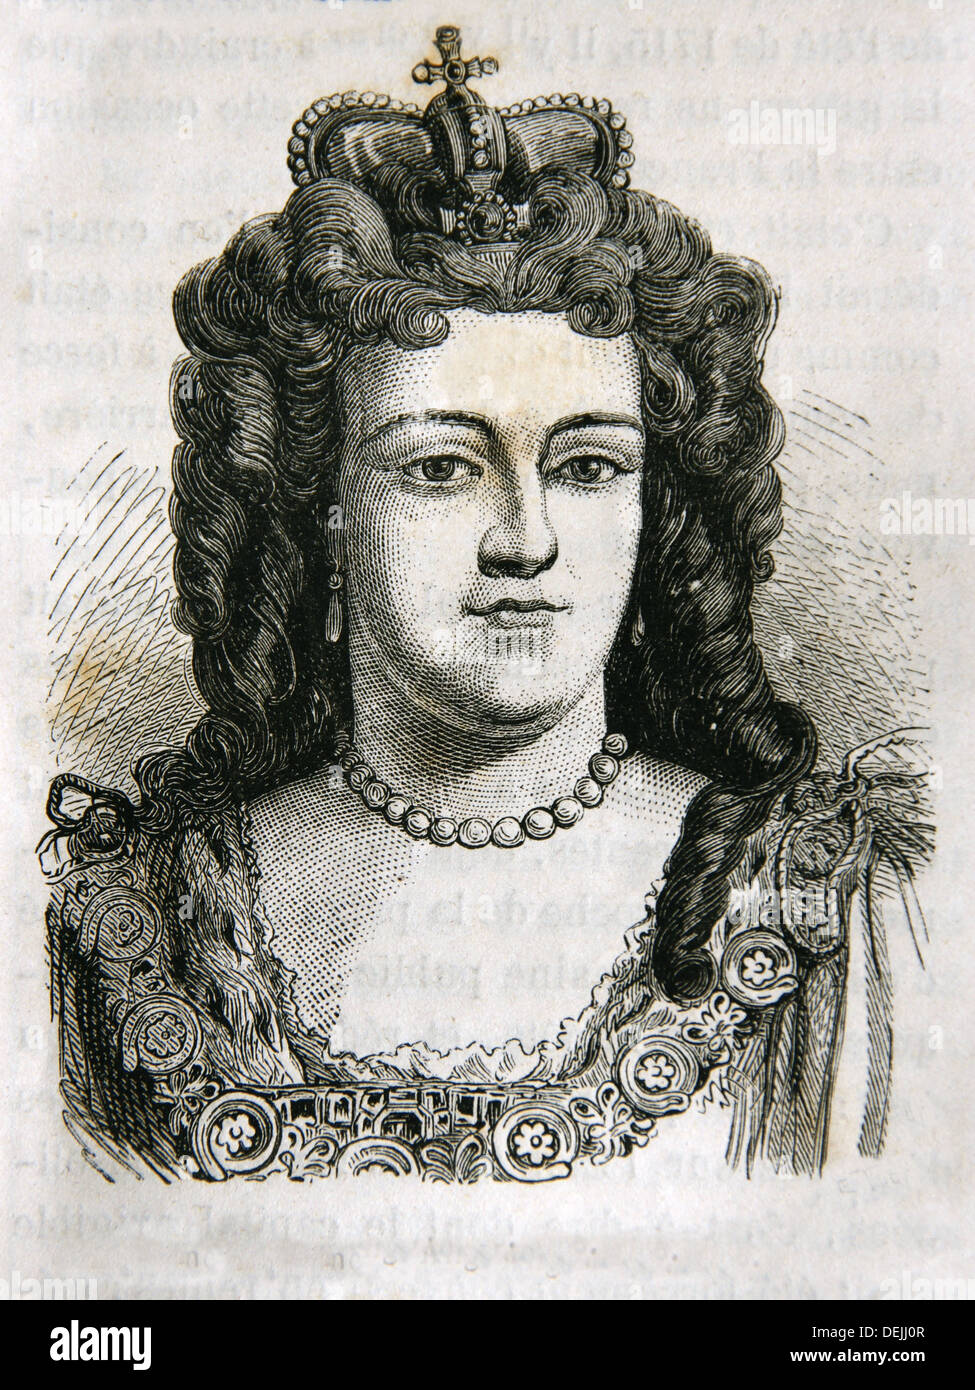 Anne 6 February 1665 - 1 August 1714 became Queen regnant of England, Scotland and Ireland on 8 March 1702, succeeding her - Stock Image